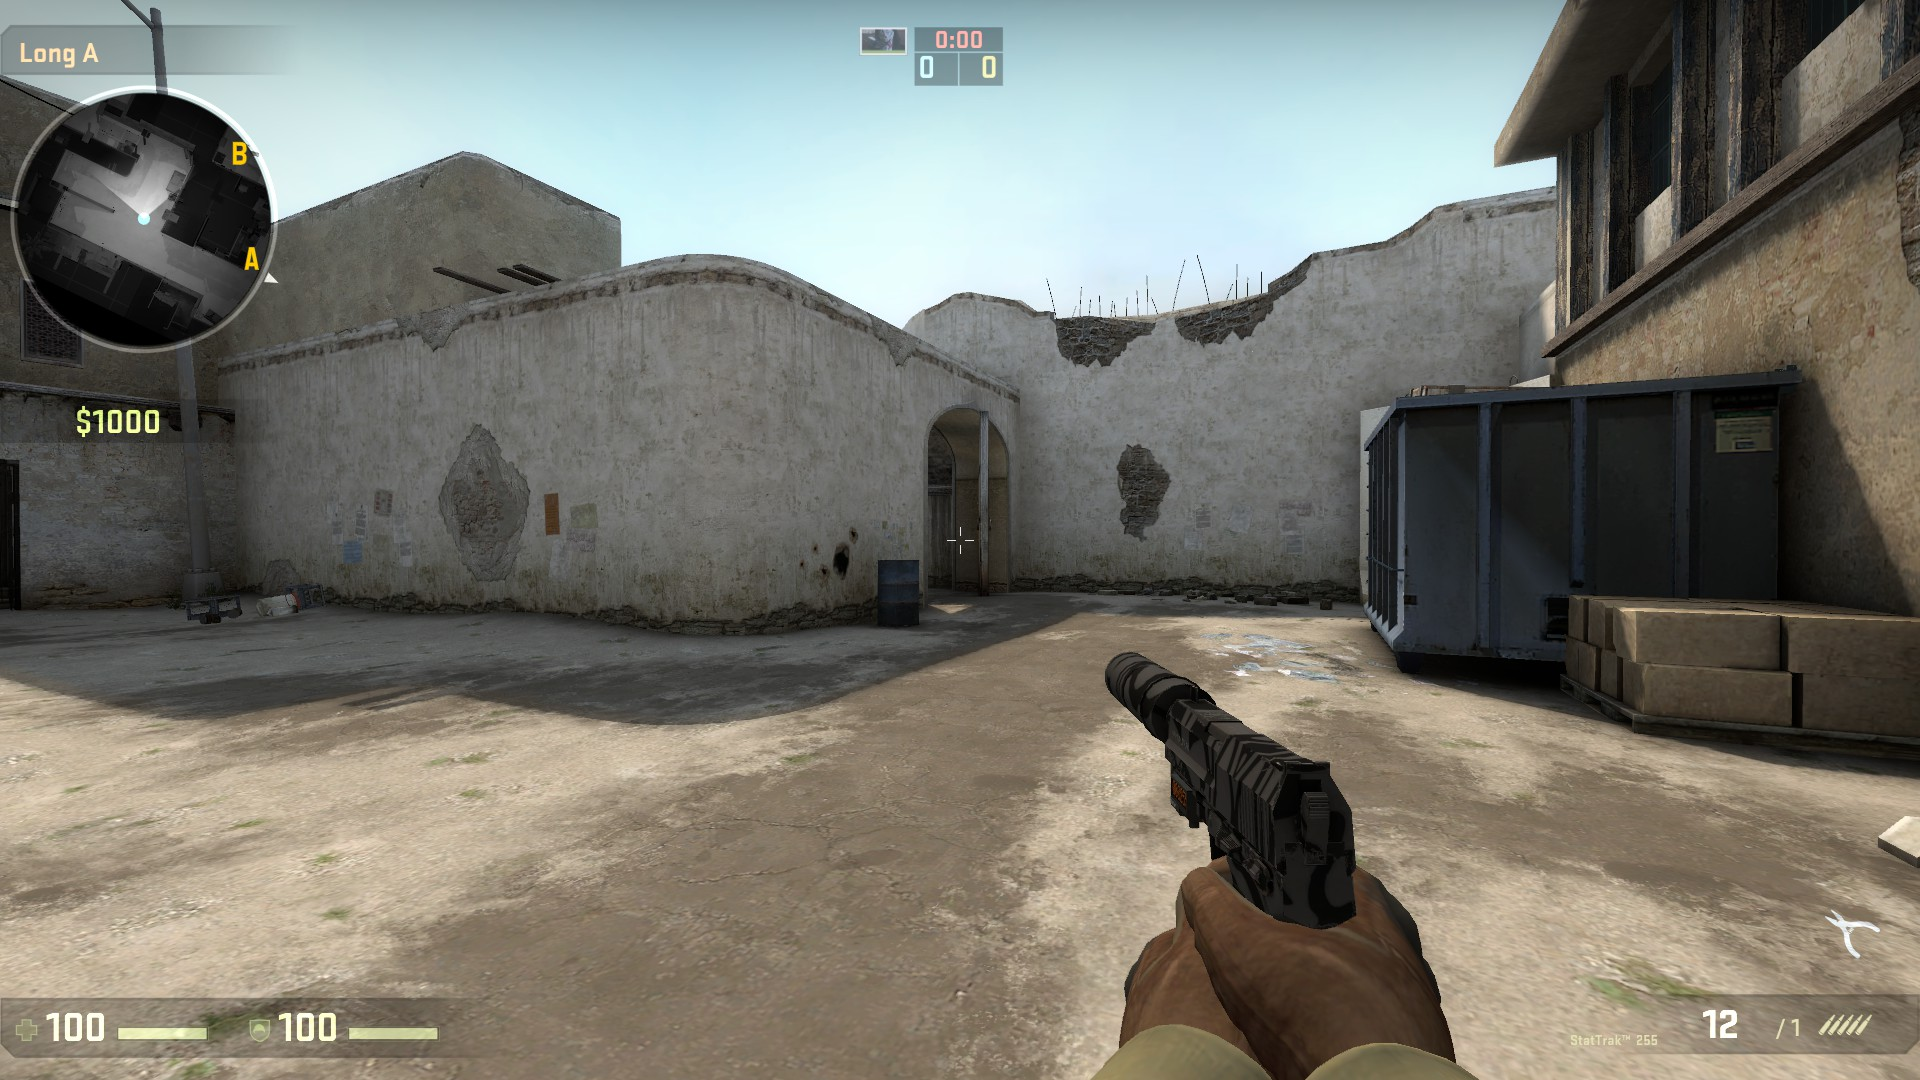 Cs go viewmodel bobbing